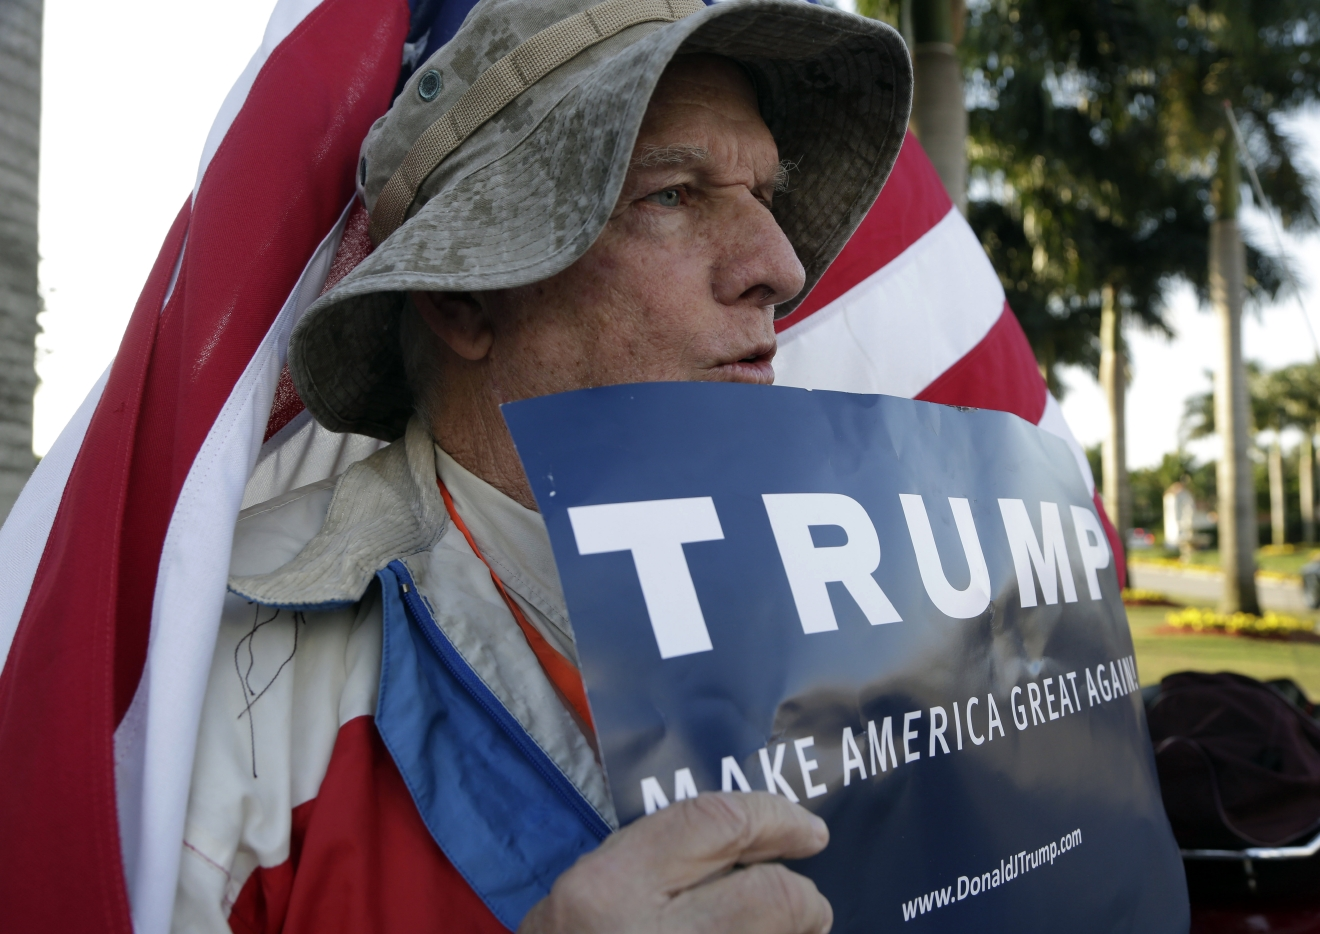 John King, 74, of Miami, holds a sign supporting Republican presidential candidate Donald Trump outside of the Trump National Doral golf resort, as opponents to Trump protest across the street,  Monday, March 14, 2016, in Doral, Fla. Voters go to the polls in Florida Tuesday for the primary election. (AP Photo/Lynne Sladky)